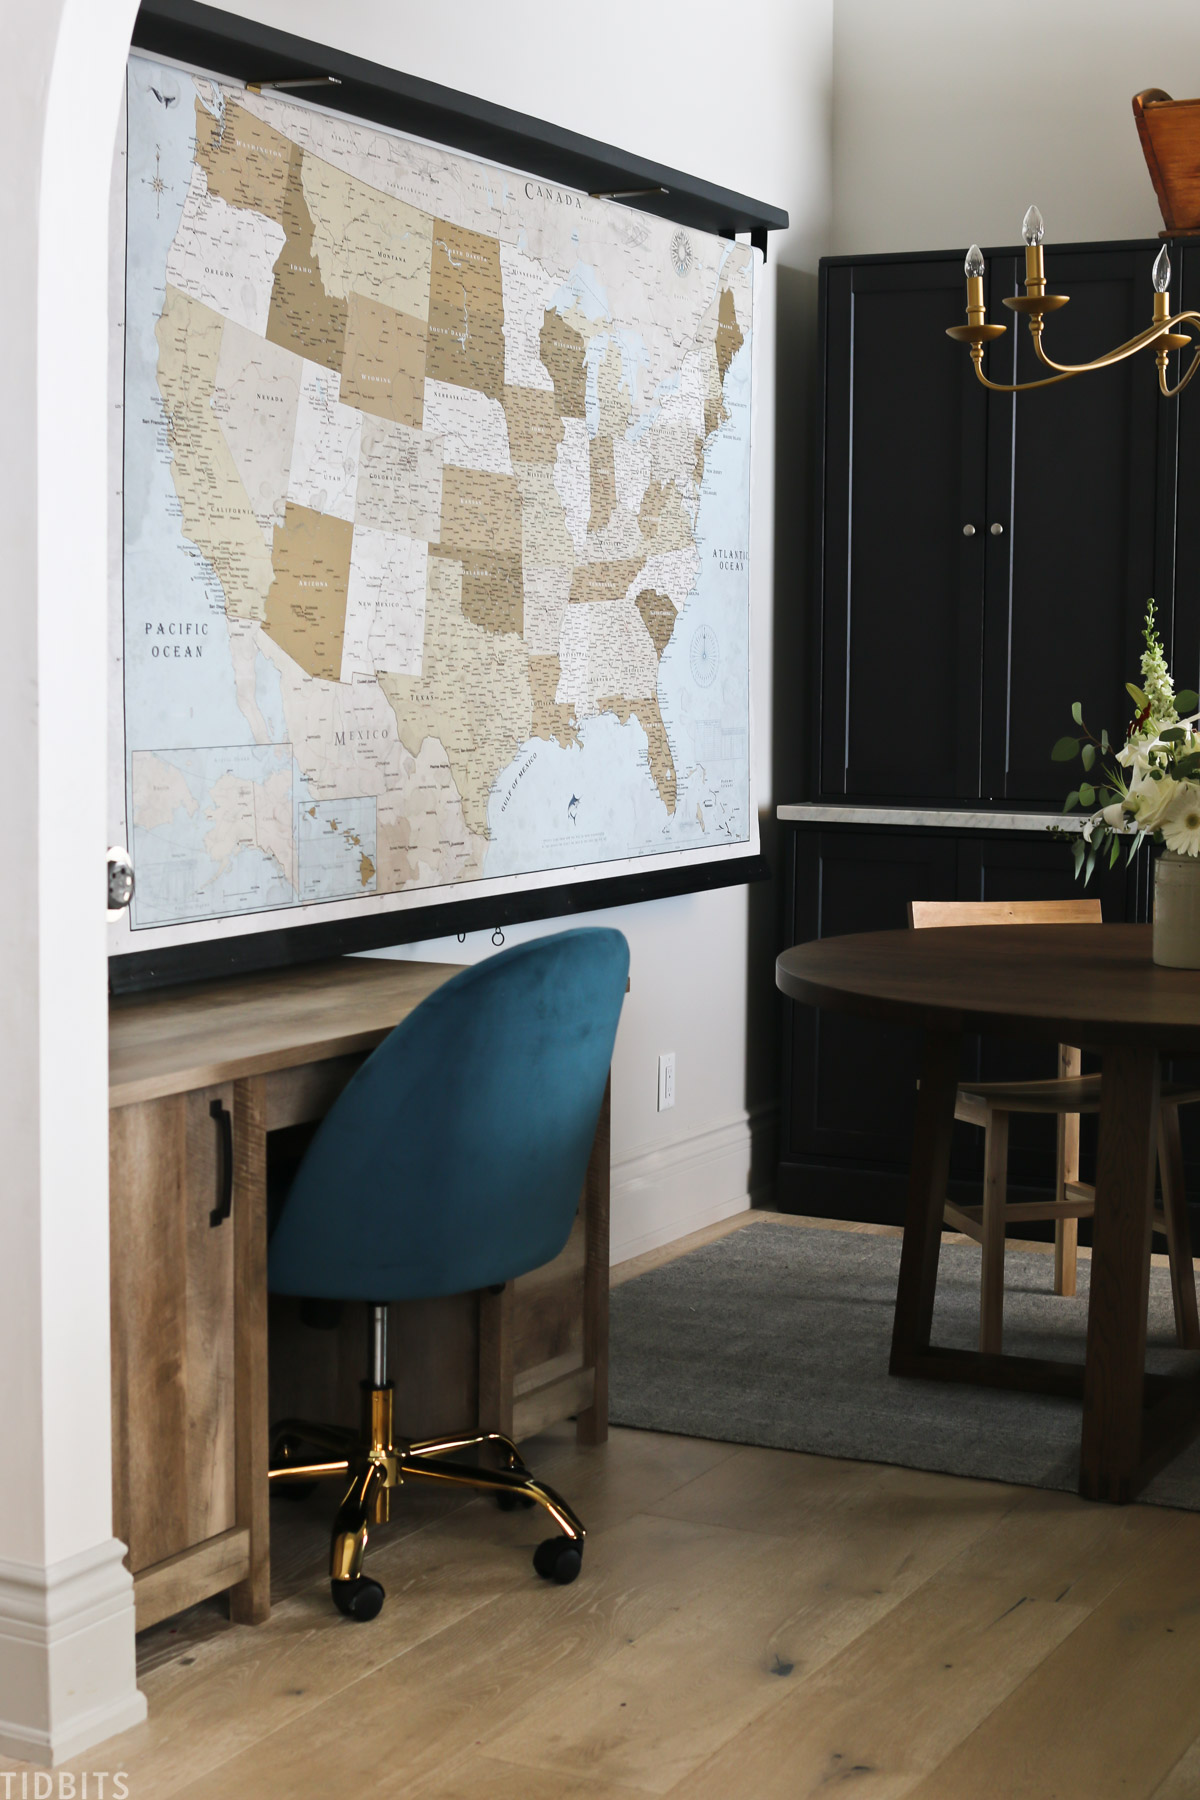 blue chair and desk placed in homeschool room in front of a pulldown classroom map